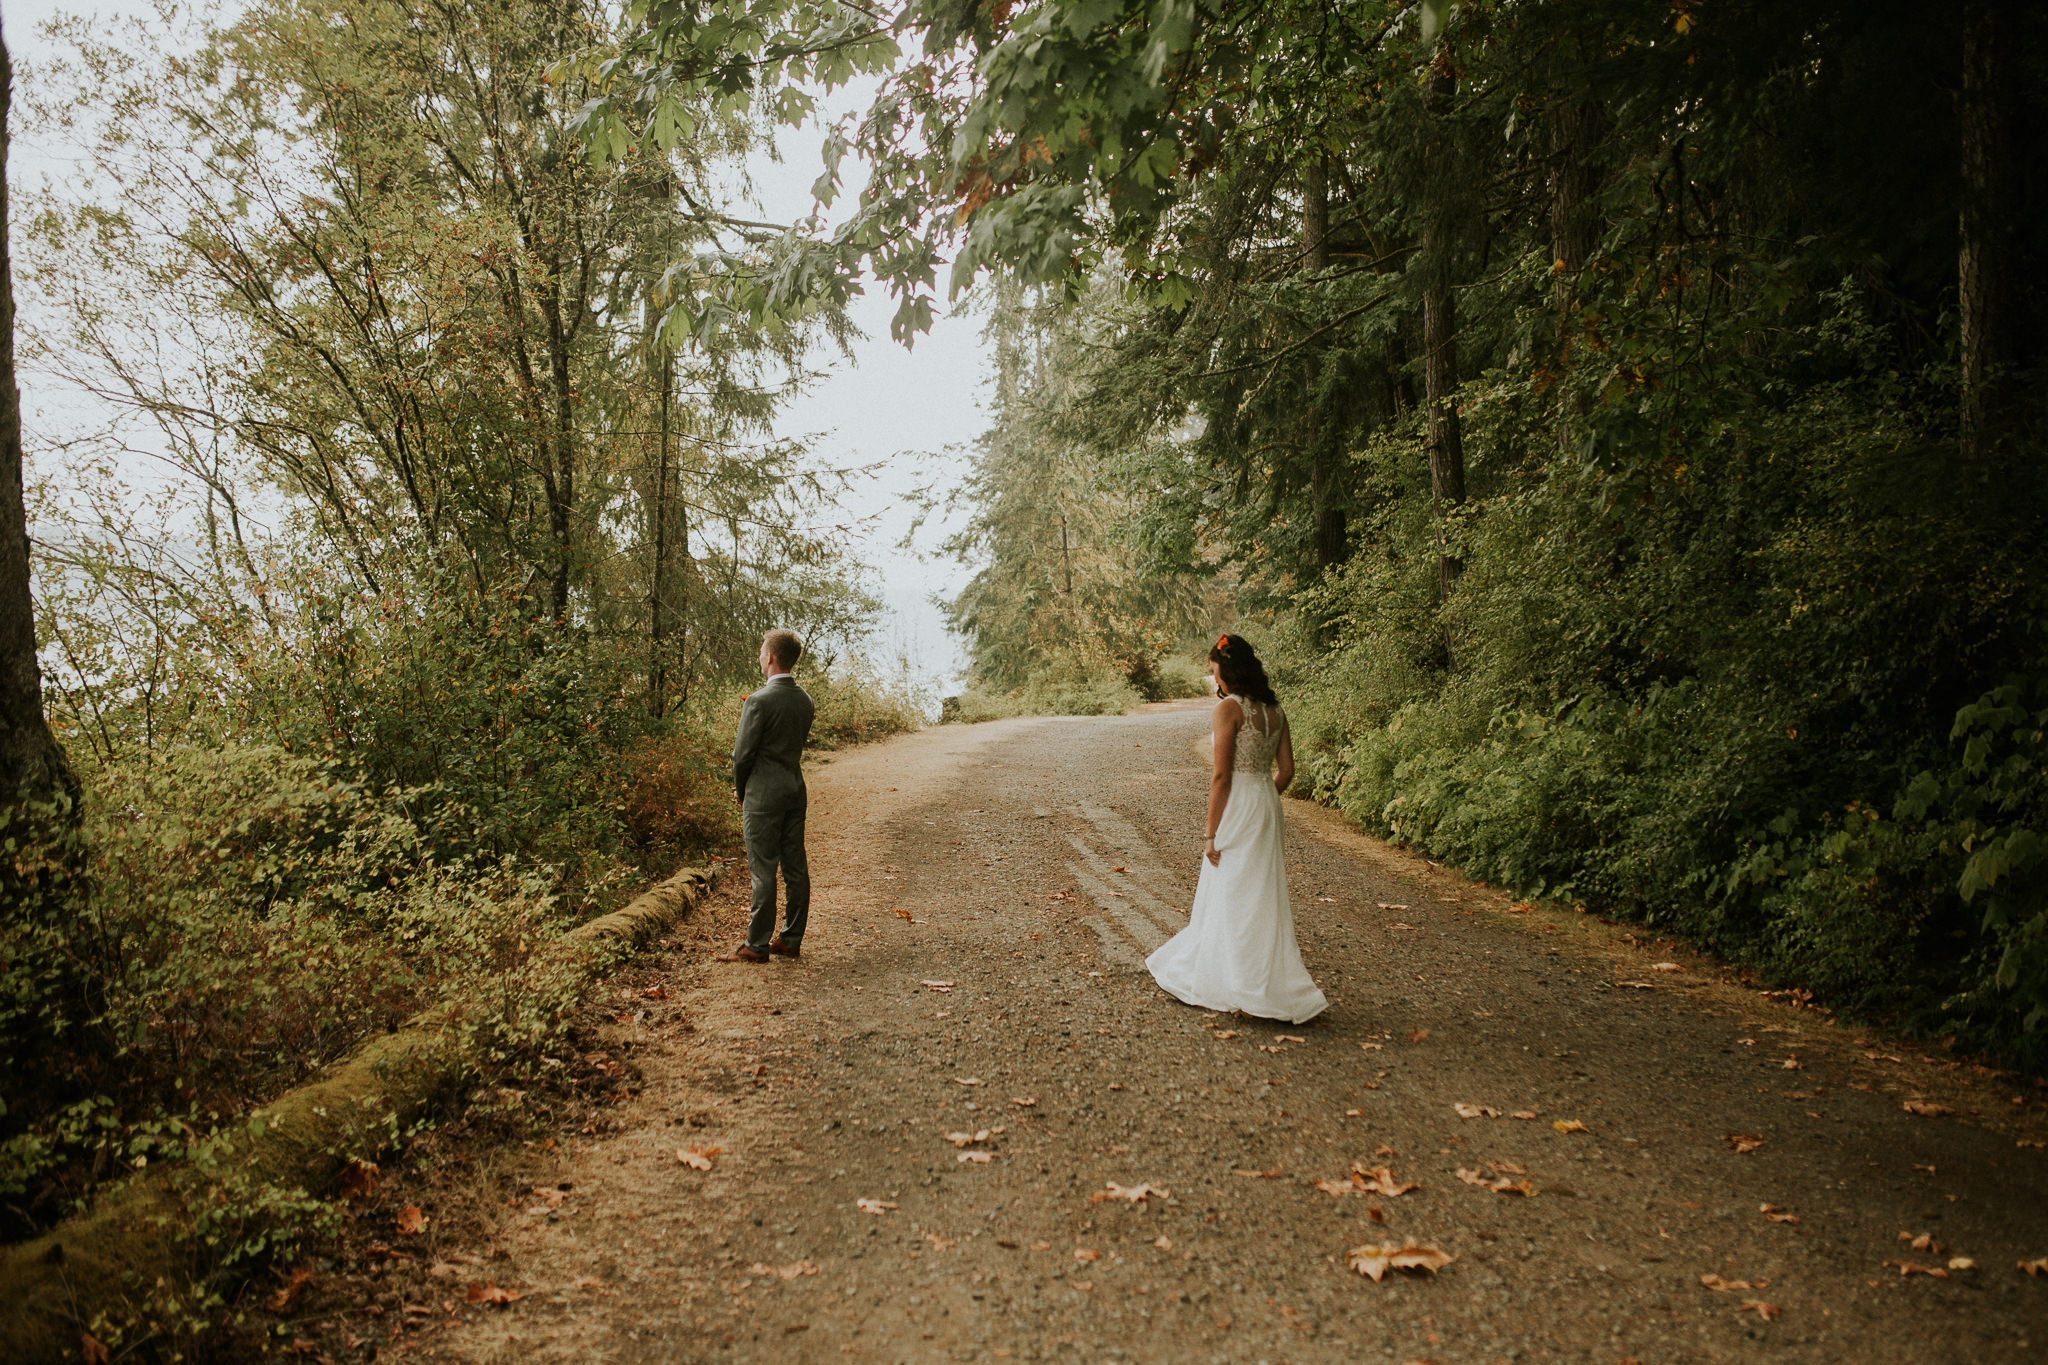 Port-Orchard-Manchester-Park-elopement-Bride-And-Groom-5.jpg